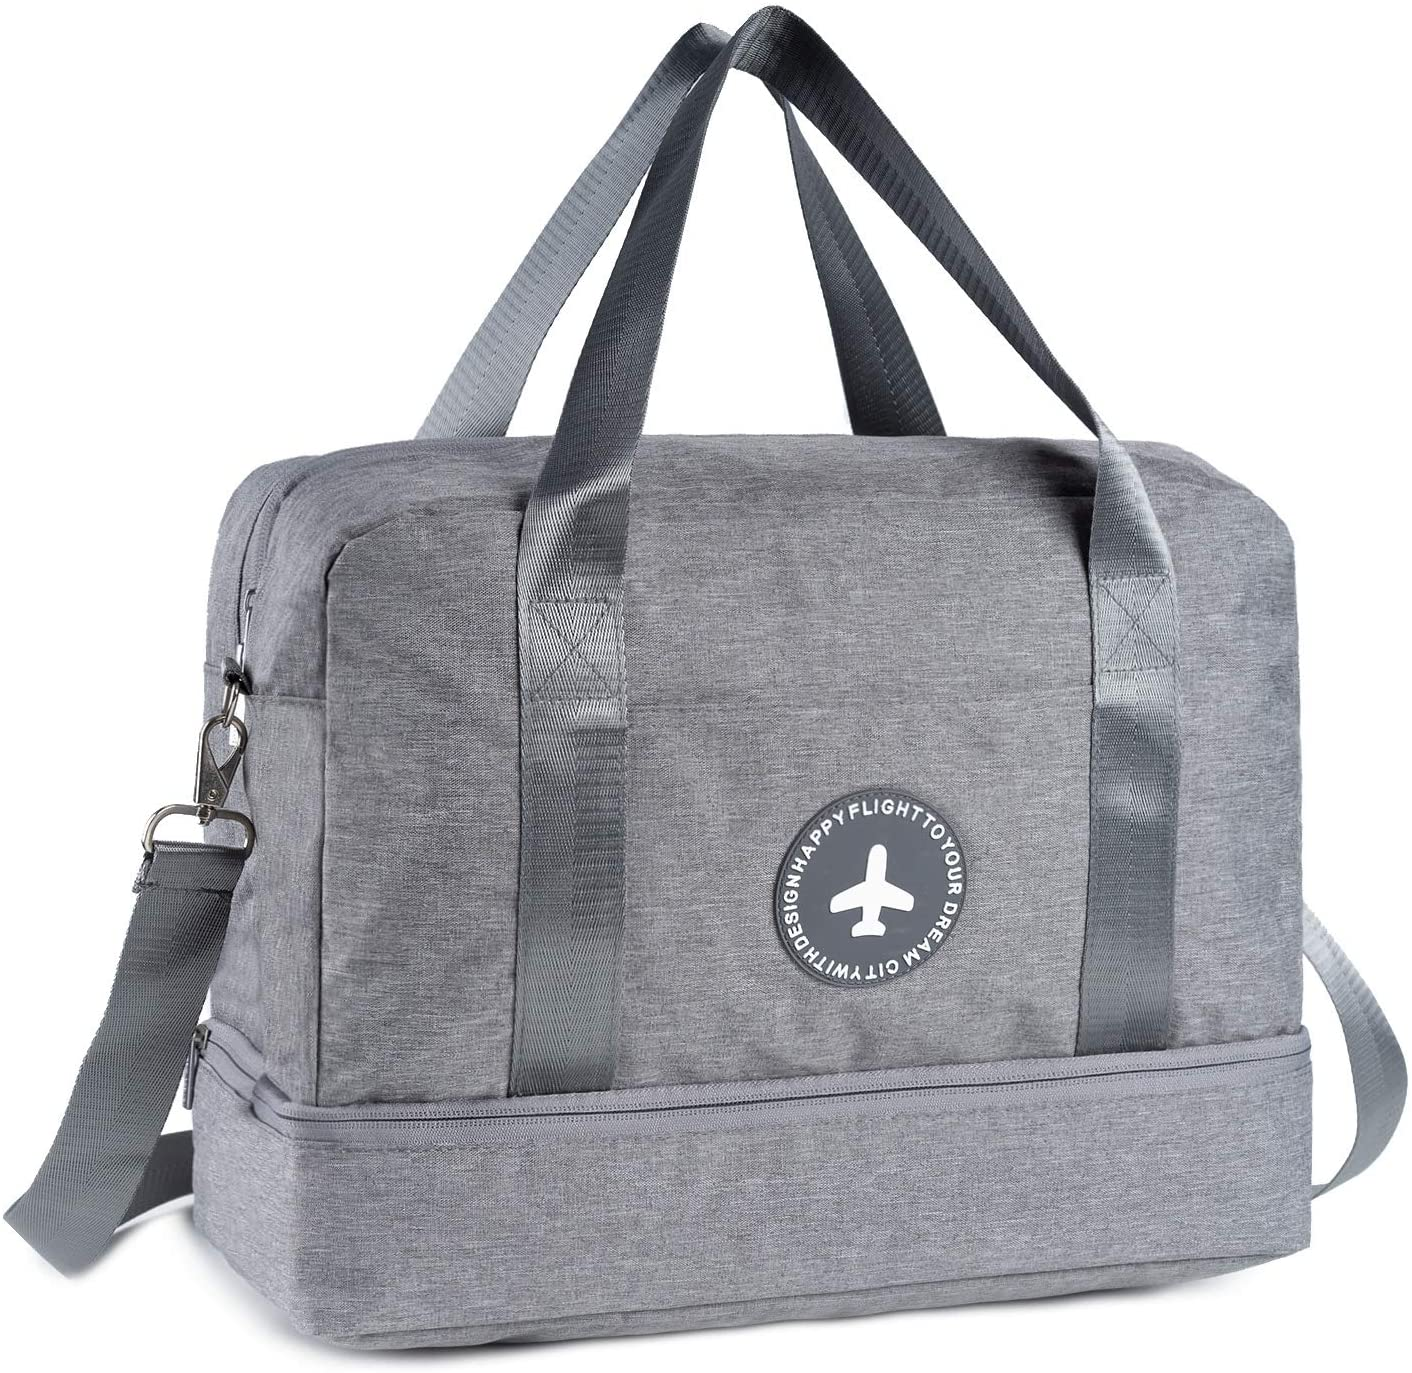 RoLekim Gym Totes Bag Gym Bag For Men and Women with Shoes Compartment Beach Bag Dry Wet Depart Swim Waterproof (Grey 2way)